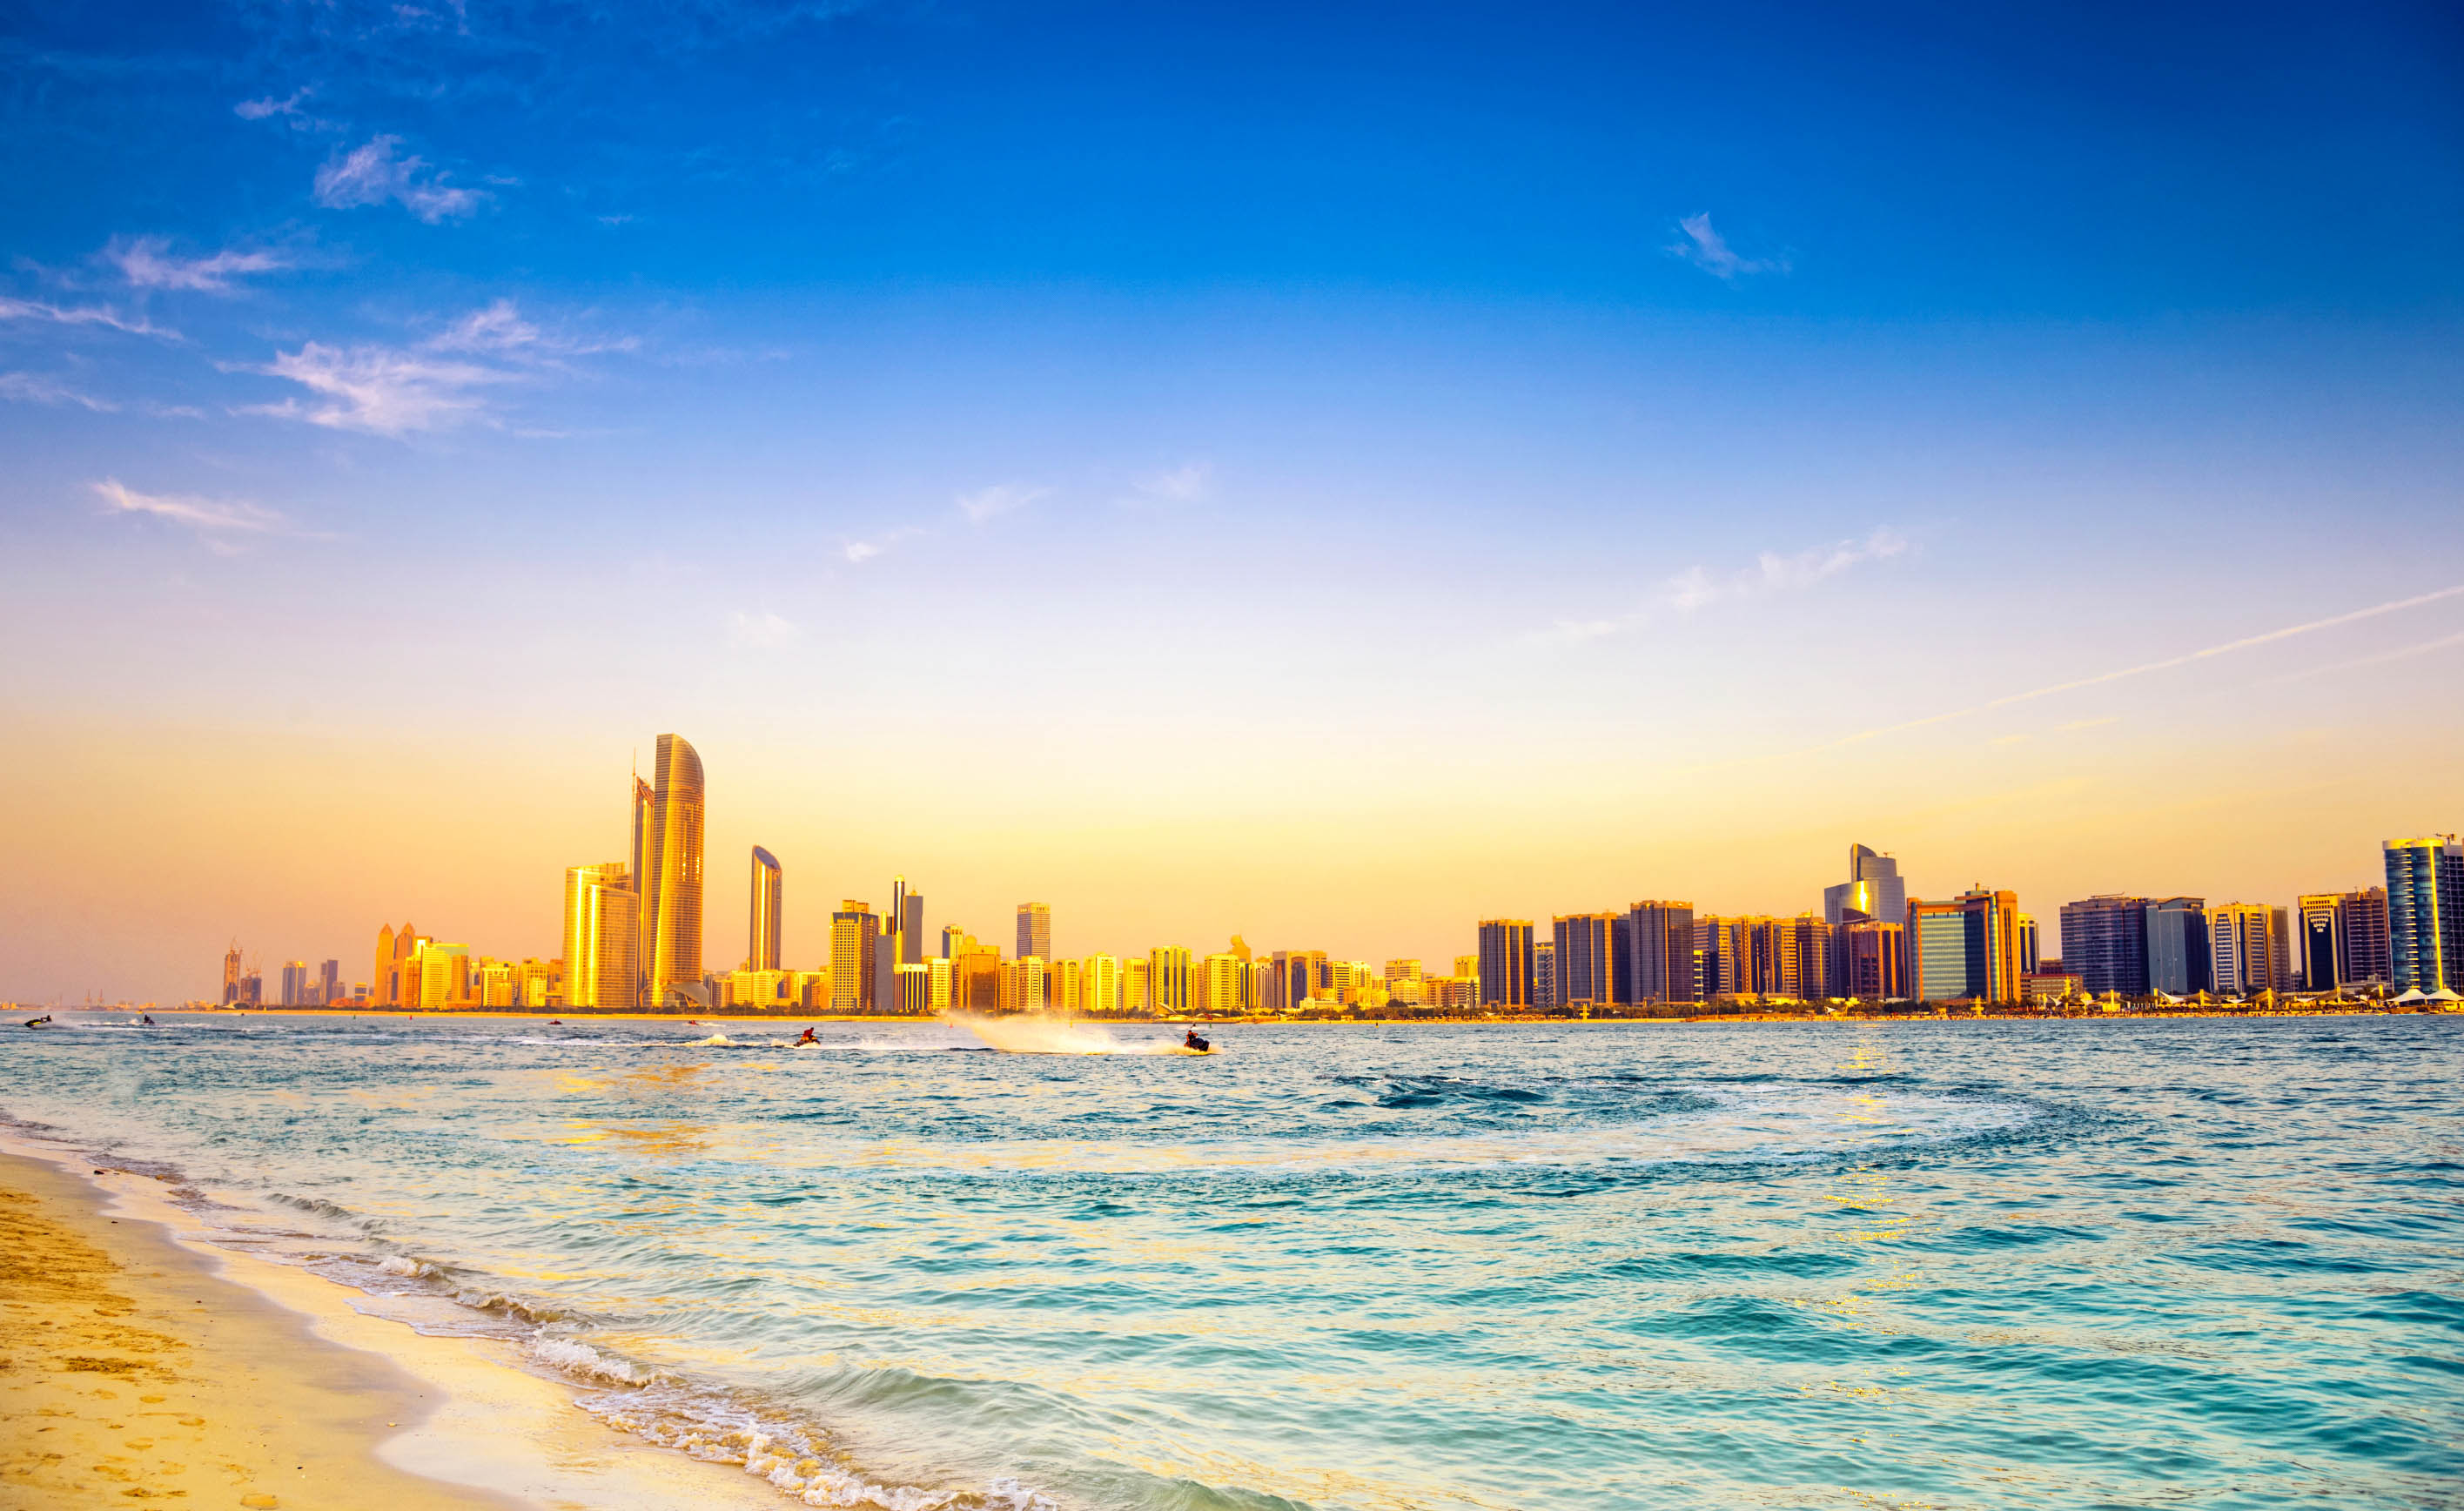 abu dhabi to dubai essay Getting a visa review your trip citizens  united states of america and the vatican state can get a free-of-charge entry visa upon arrival at abu dhabi.